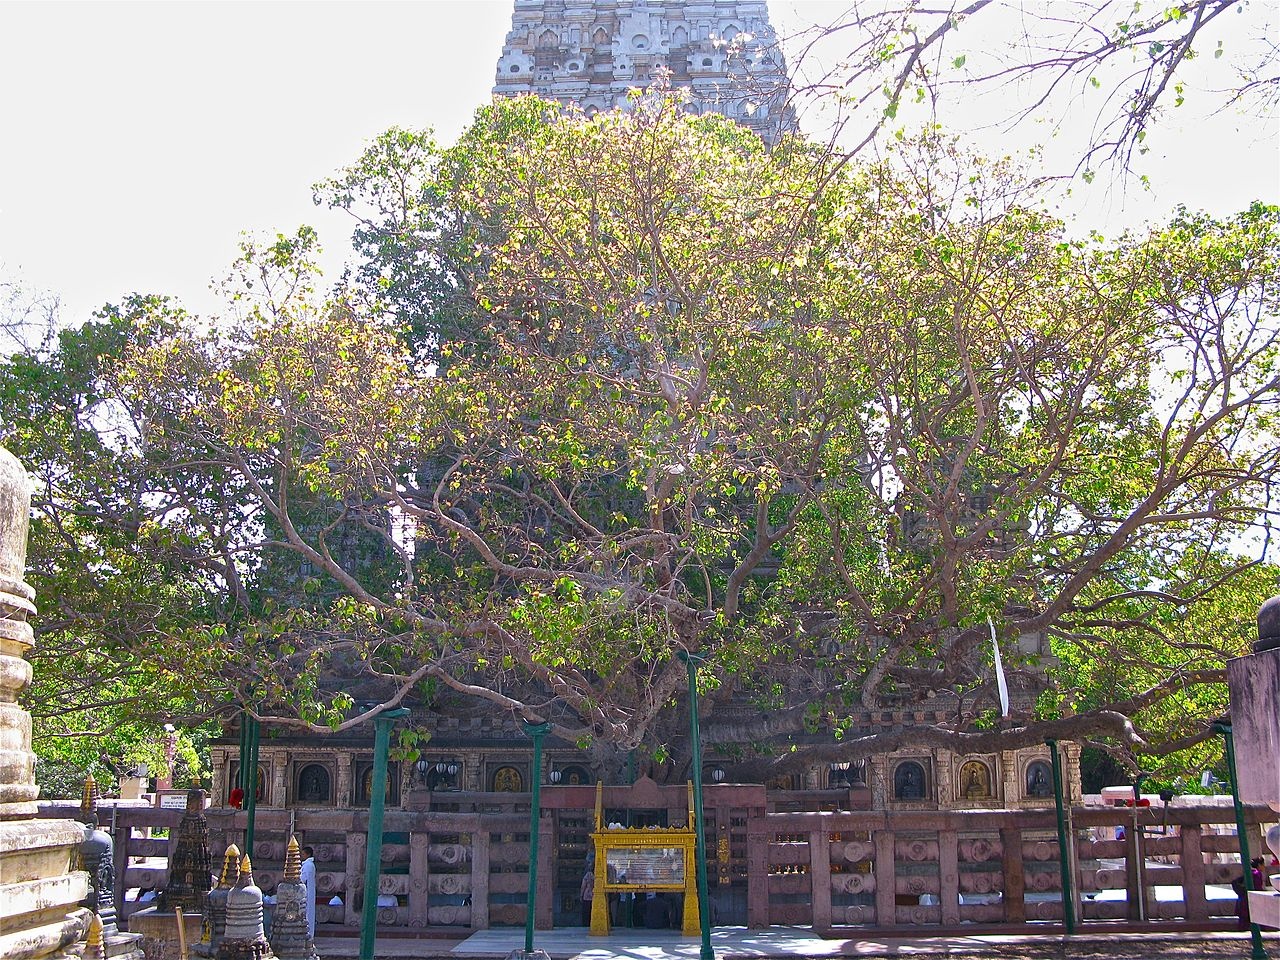 The Mahabodhi Tree at the Sri Mahabodhi Temple in Bodh Gaya